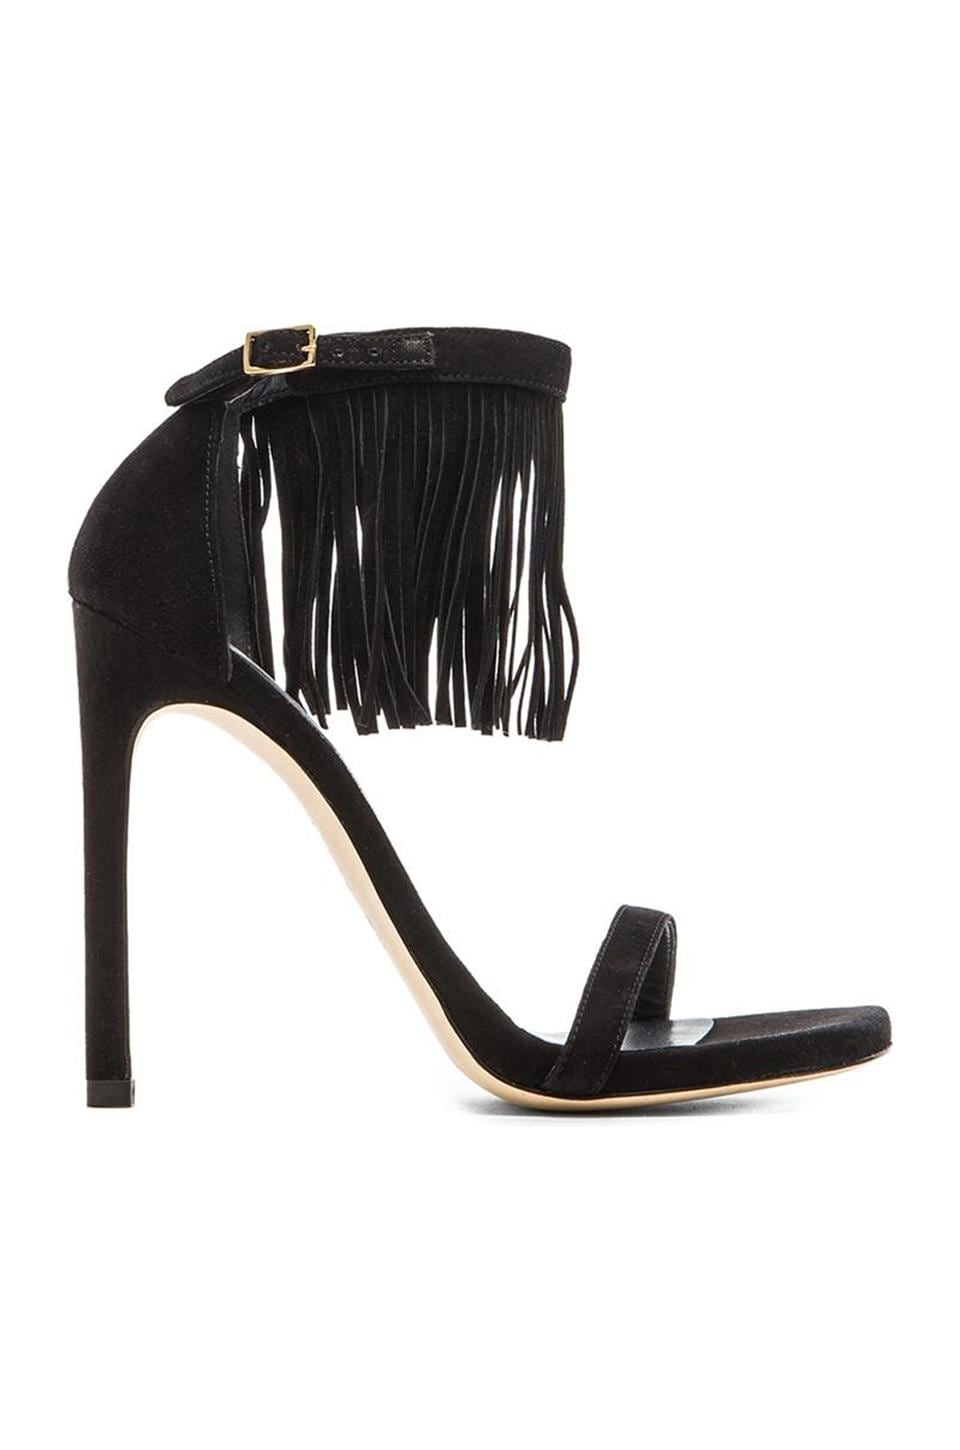 Stuart Weitzman Love fringe Heel in Black